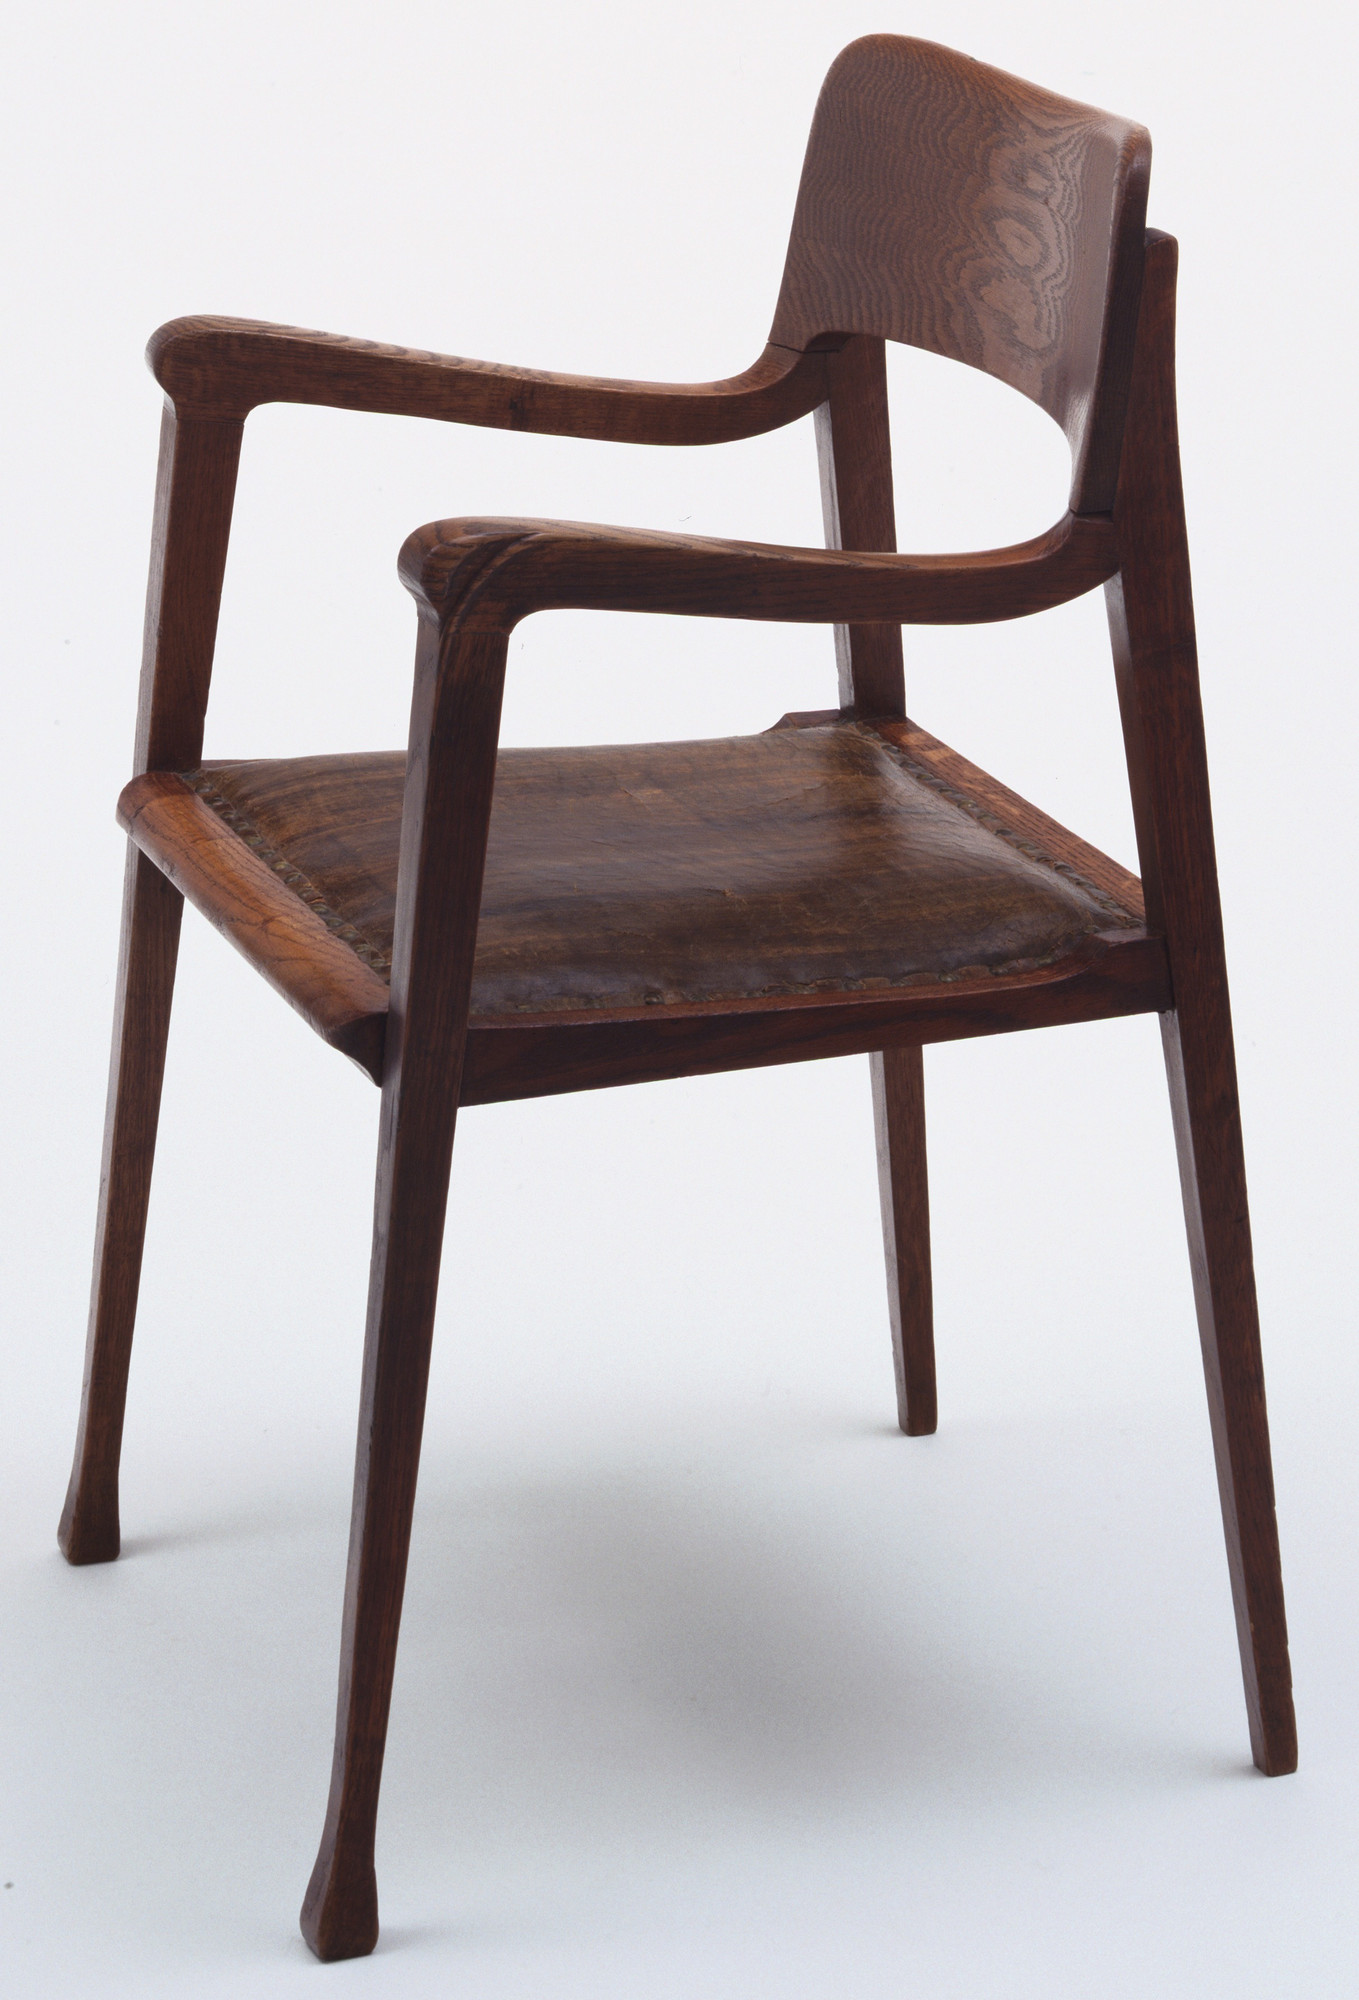 Richard Riemerschmid. Armchair. 1898-99